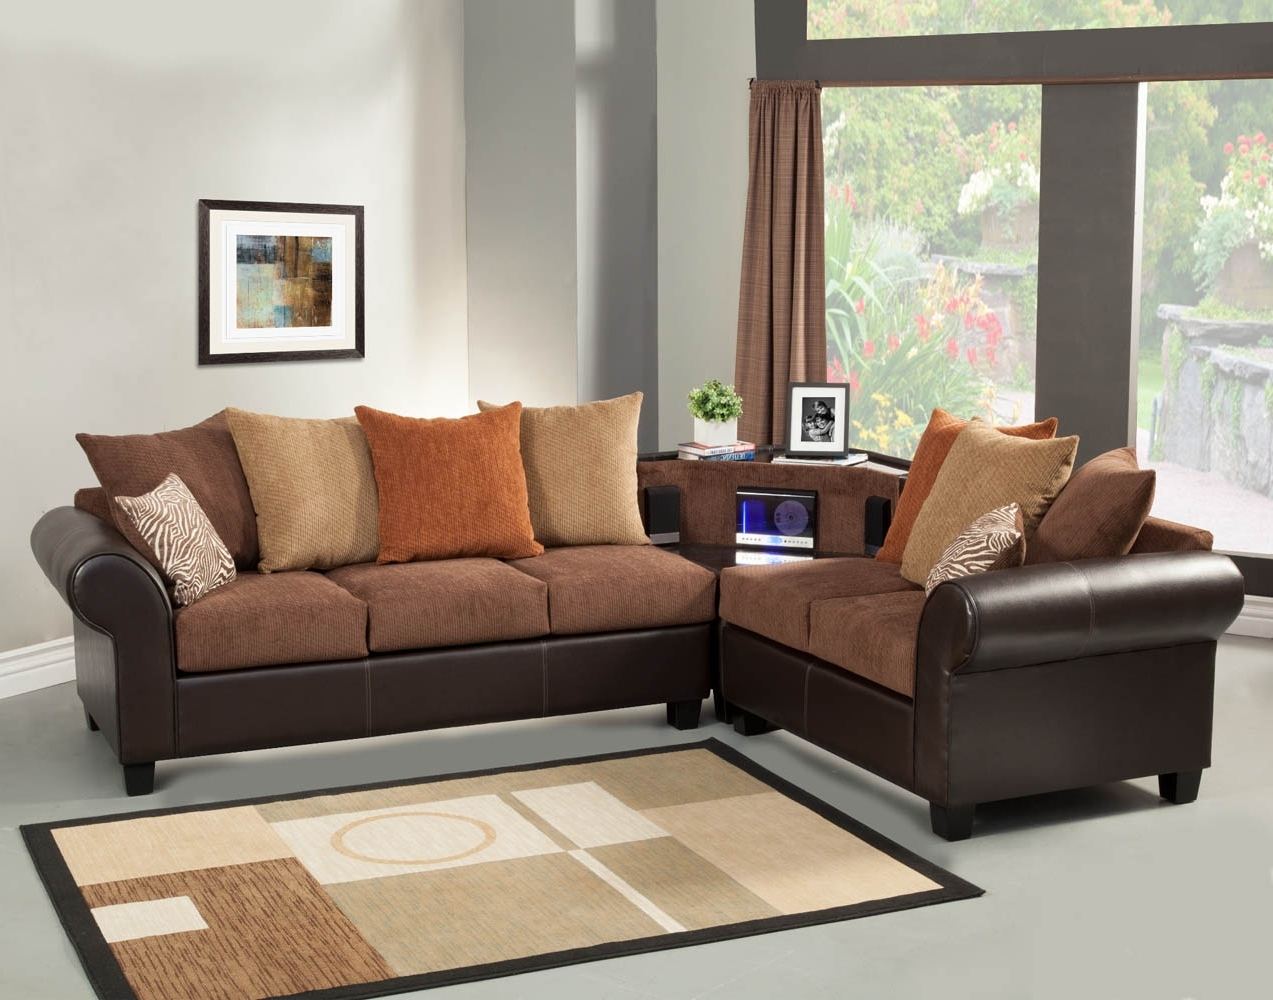 2017 Brown Sectional Sofa Set With Aux, Cd, And Am/fm Stereo With Regard To Orange Sectional Sofas (View 2 of 15)